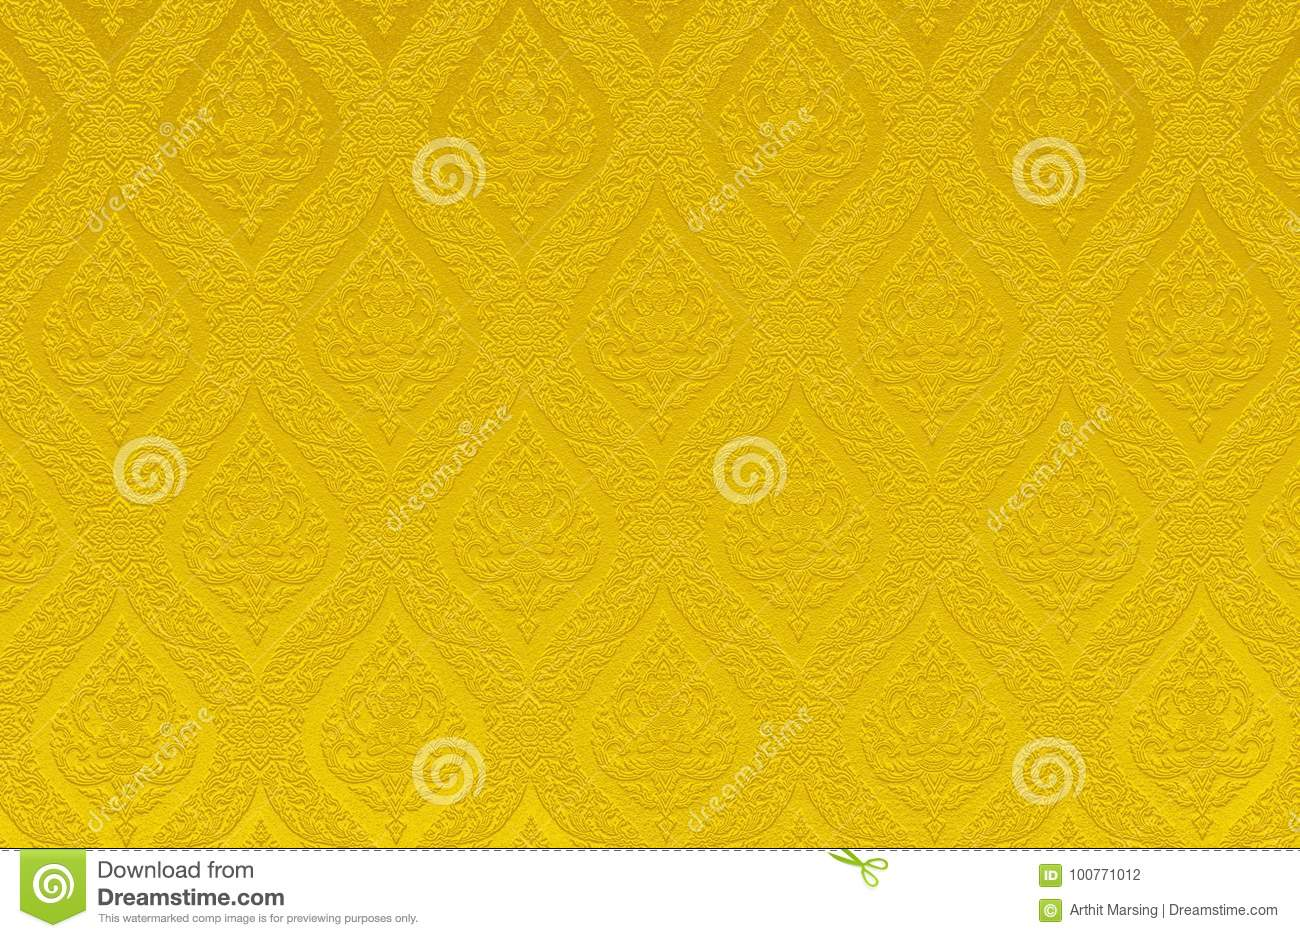 Gold color texture pattern abstract background can be use as wall paper screen saver brochure cover page or for Christmas card